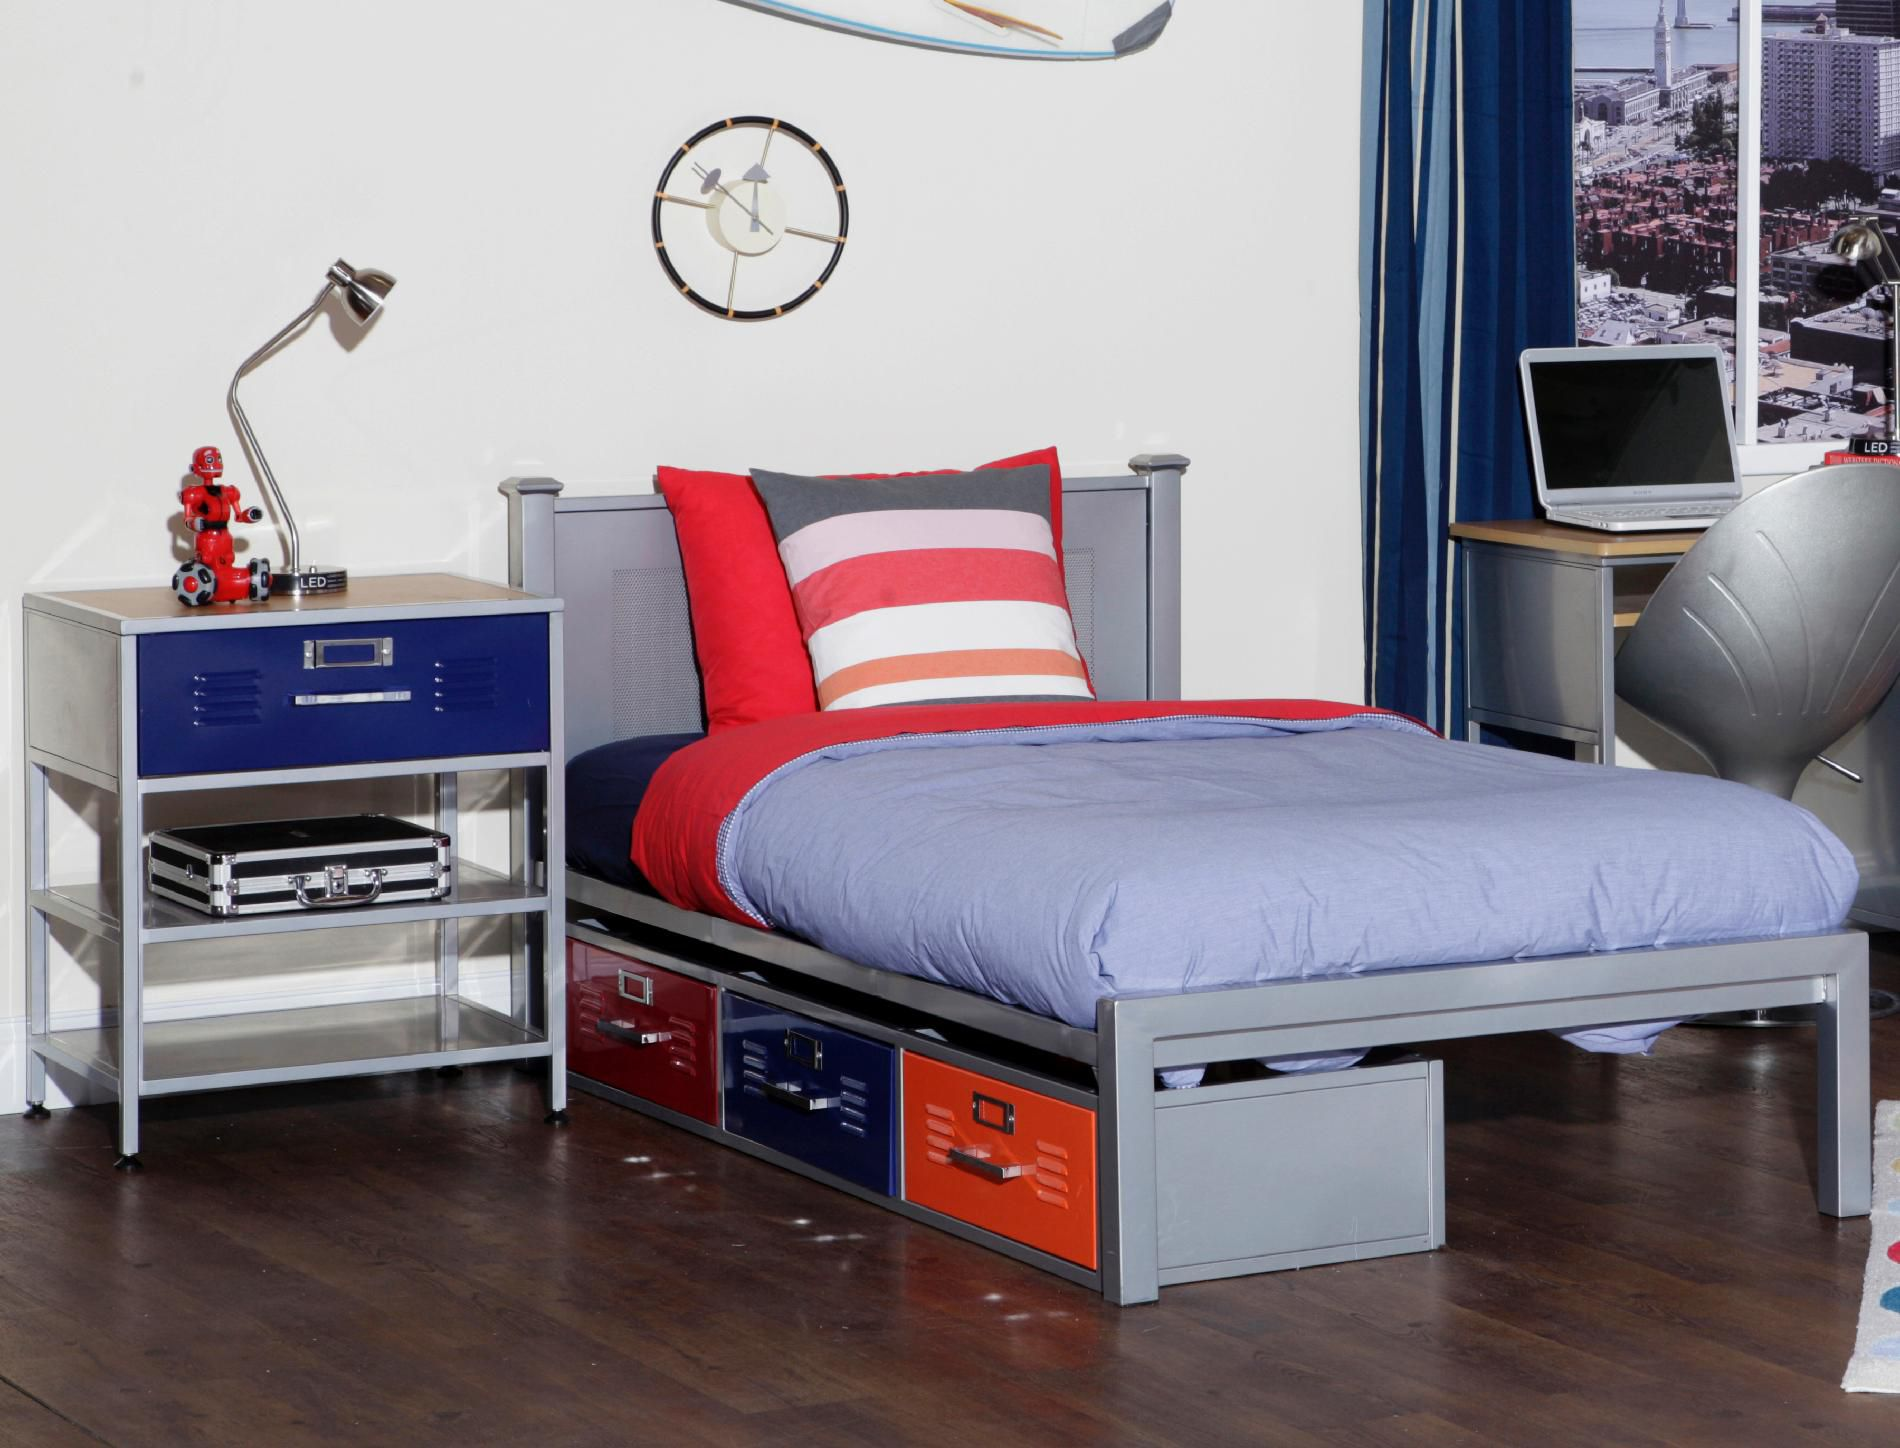 Bedroom Locker Room Furniture Amazing Bedroom Living Room